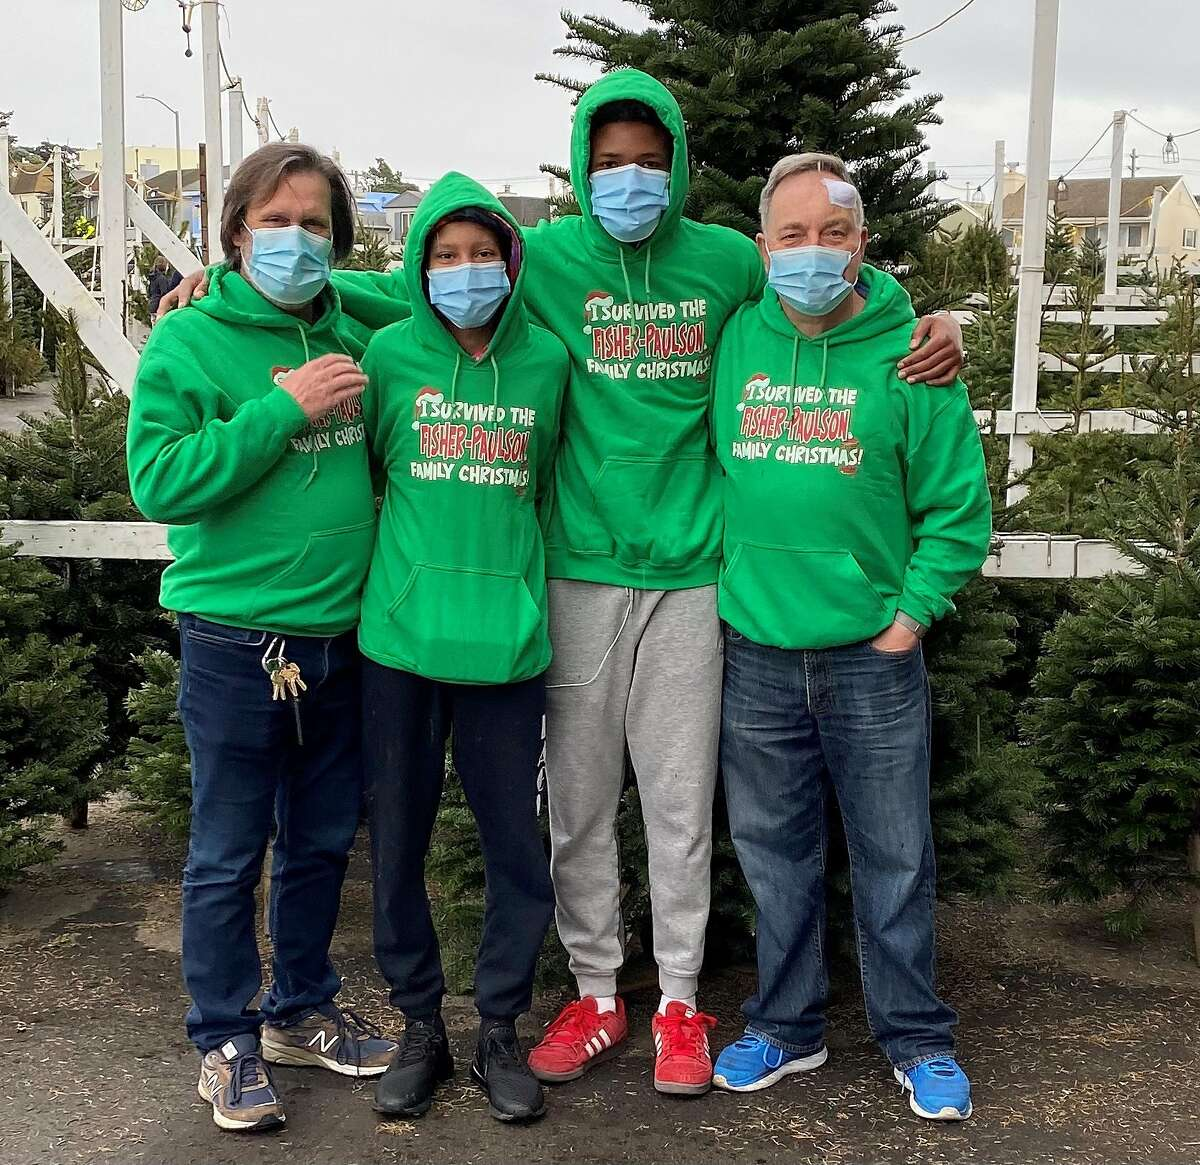 Chronicle columnist Kevin Fisher-Paulson (right) poses for a photo with his family in a Christmas tree lot, one day after undergoing surgery for Basal cell carcinoma, the most common form of skin cancer.